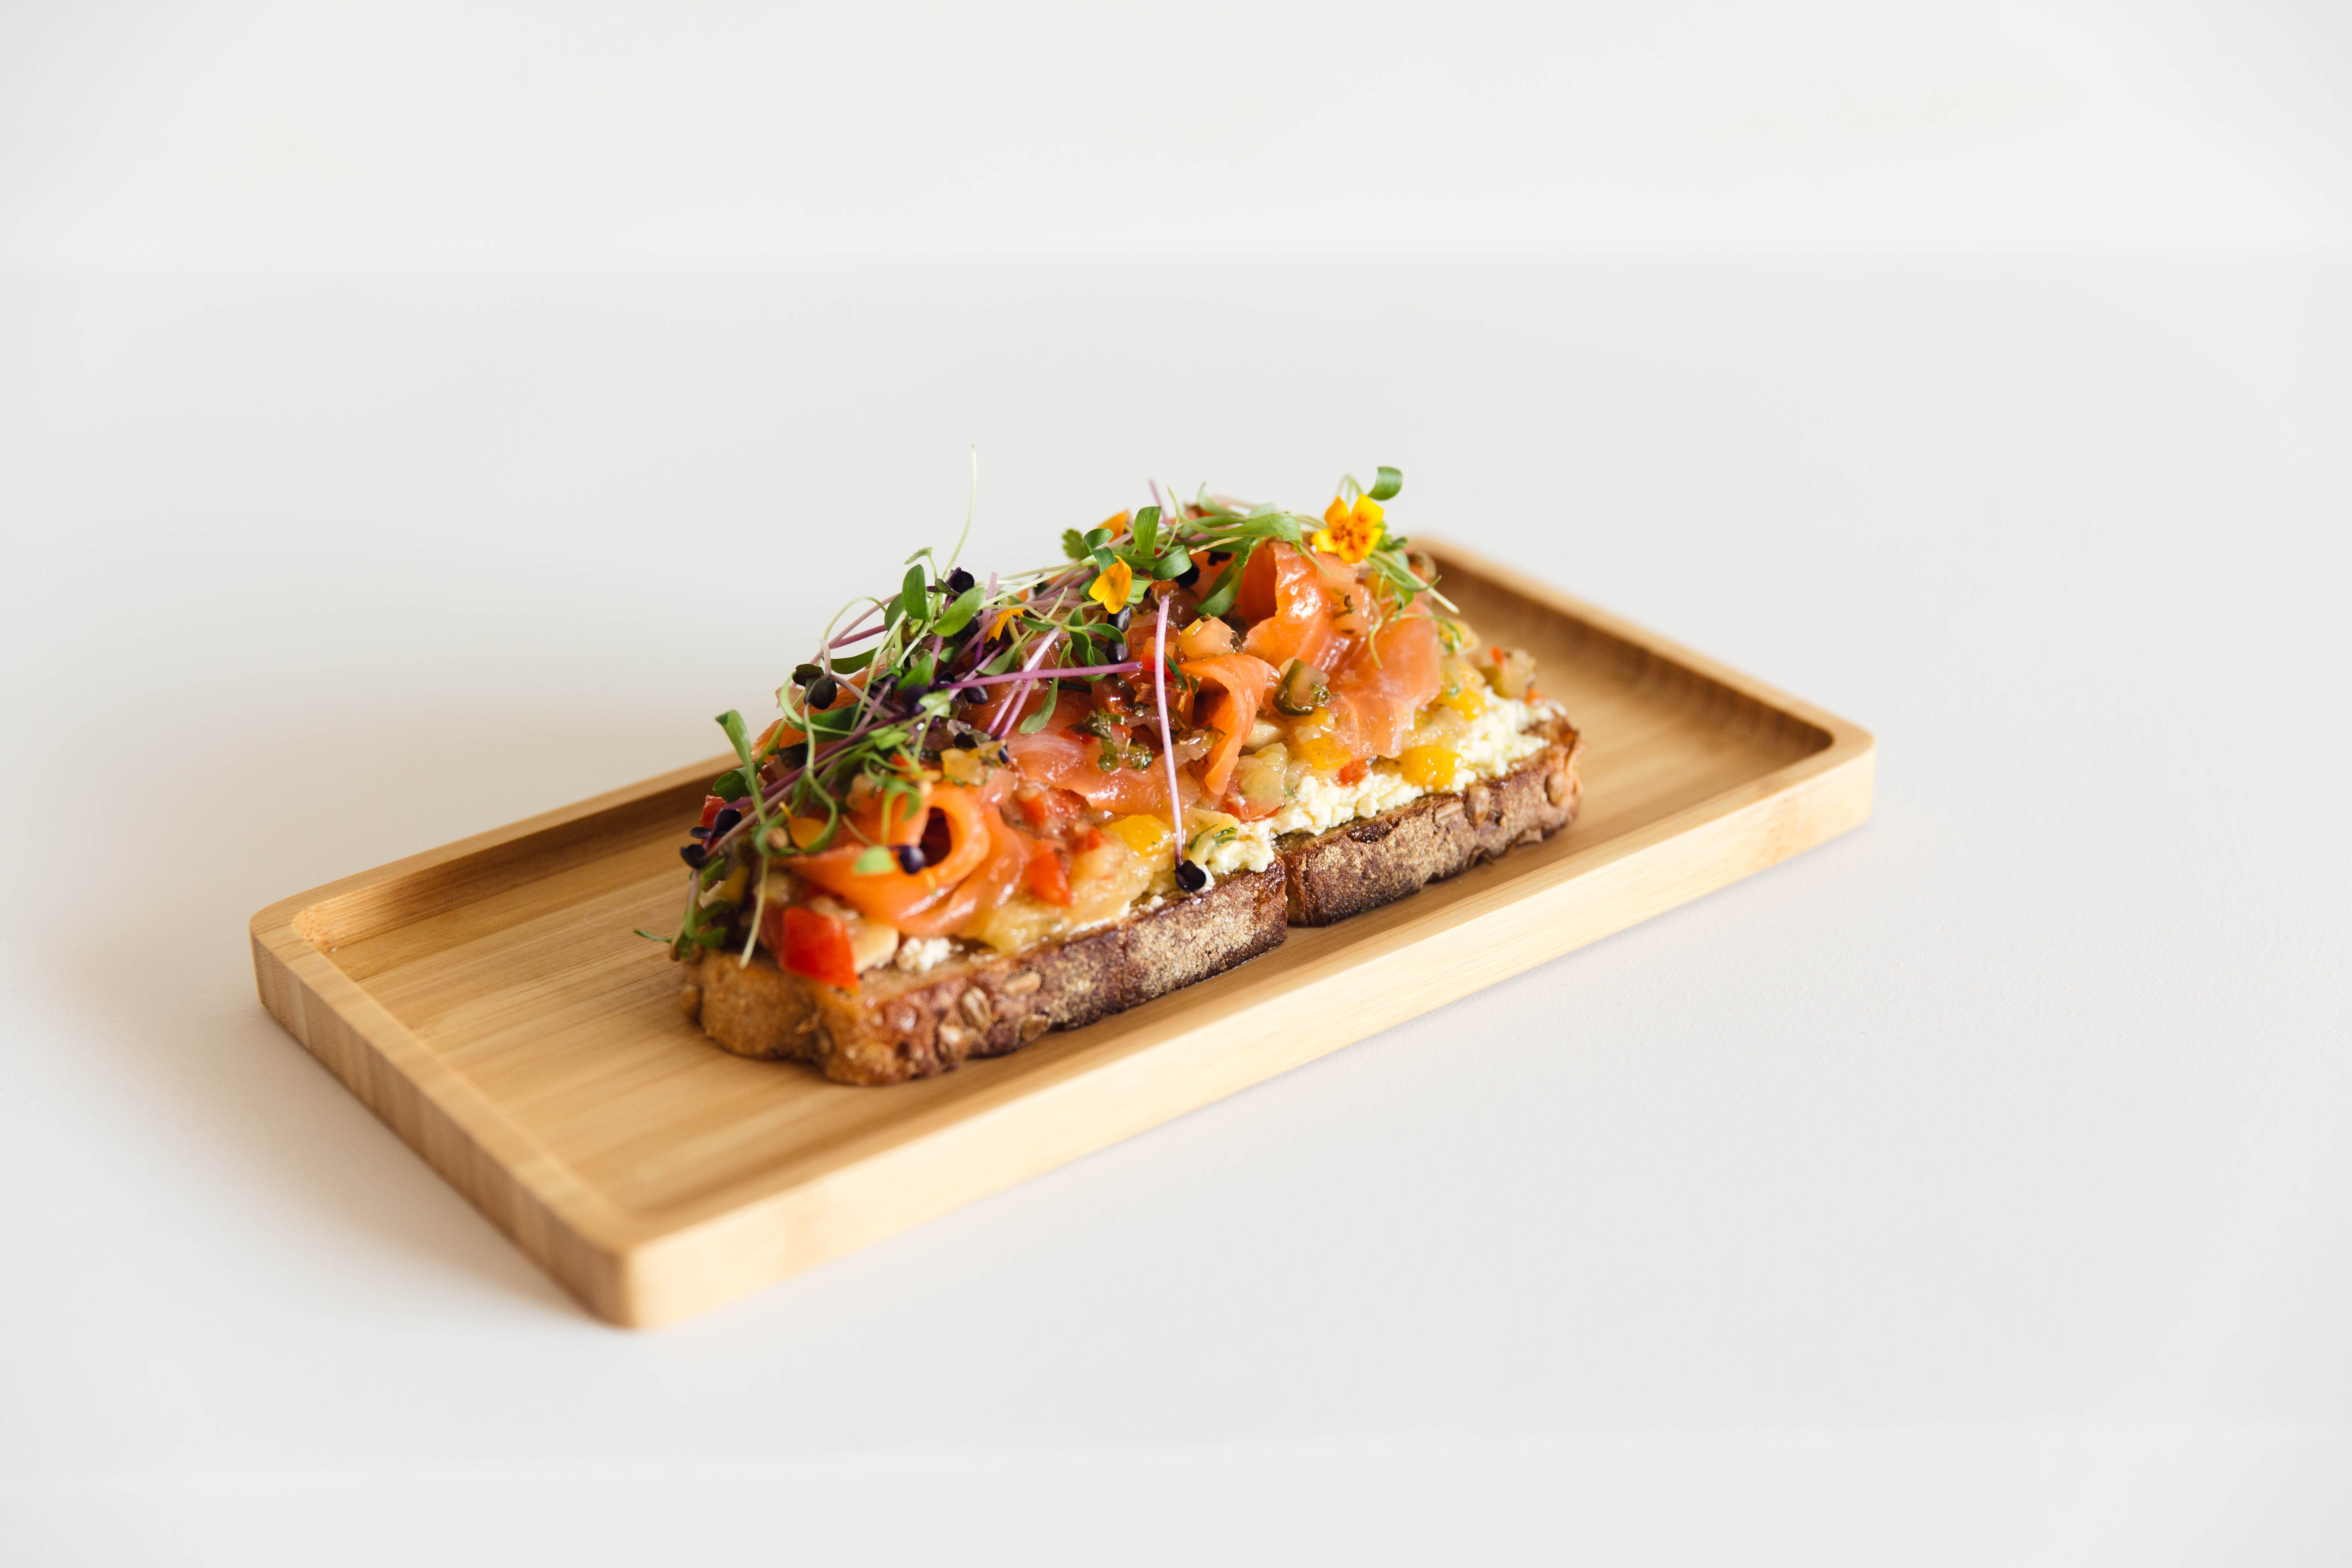 The Patagonian Goat toast from Zumo includes salmon cured in Peruvian pisco, baked goat cheese spread, pisto, and chimichurri